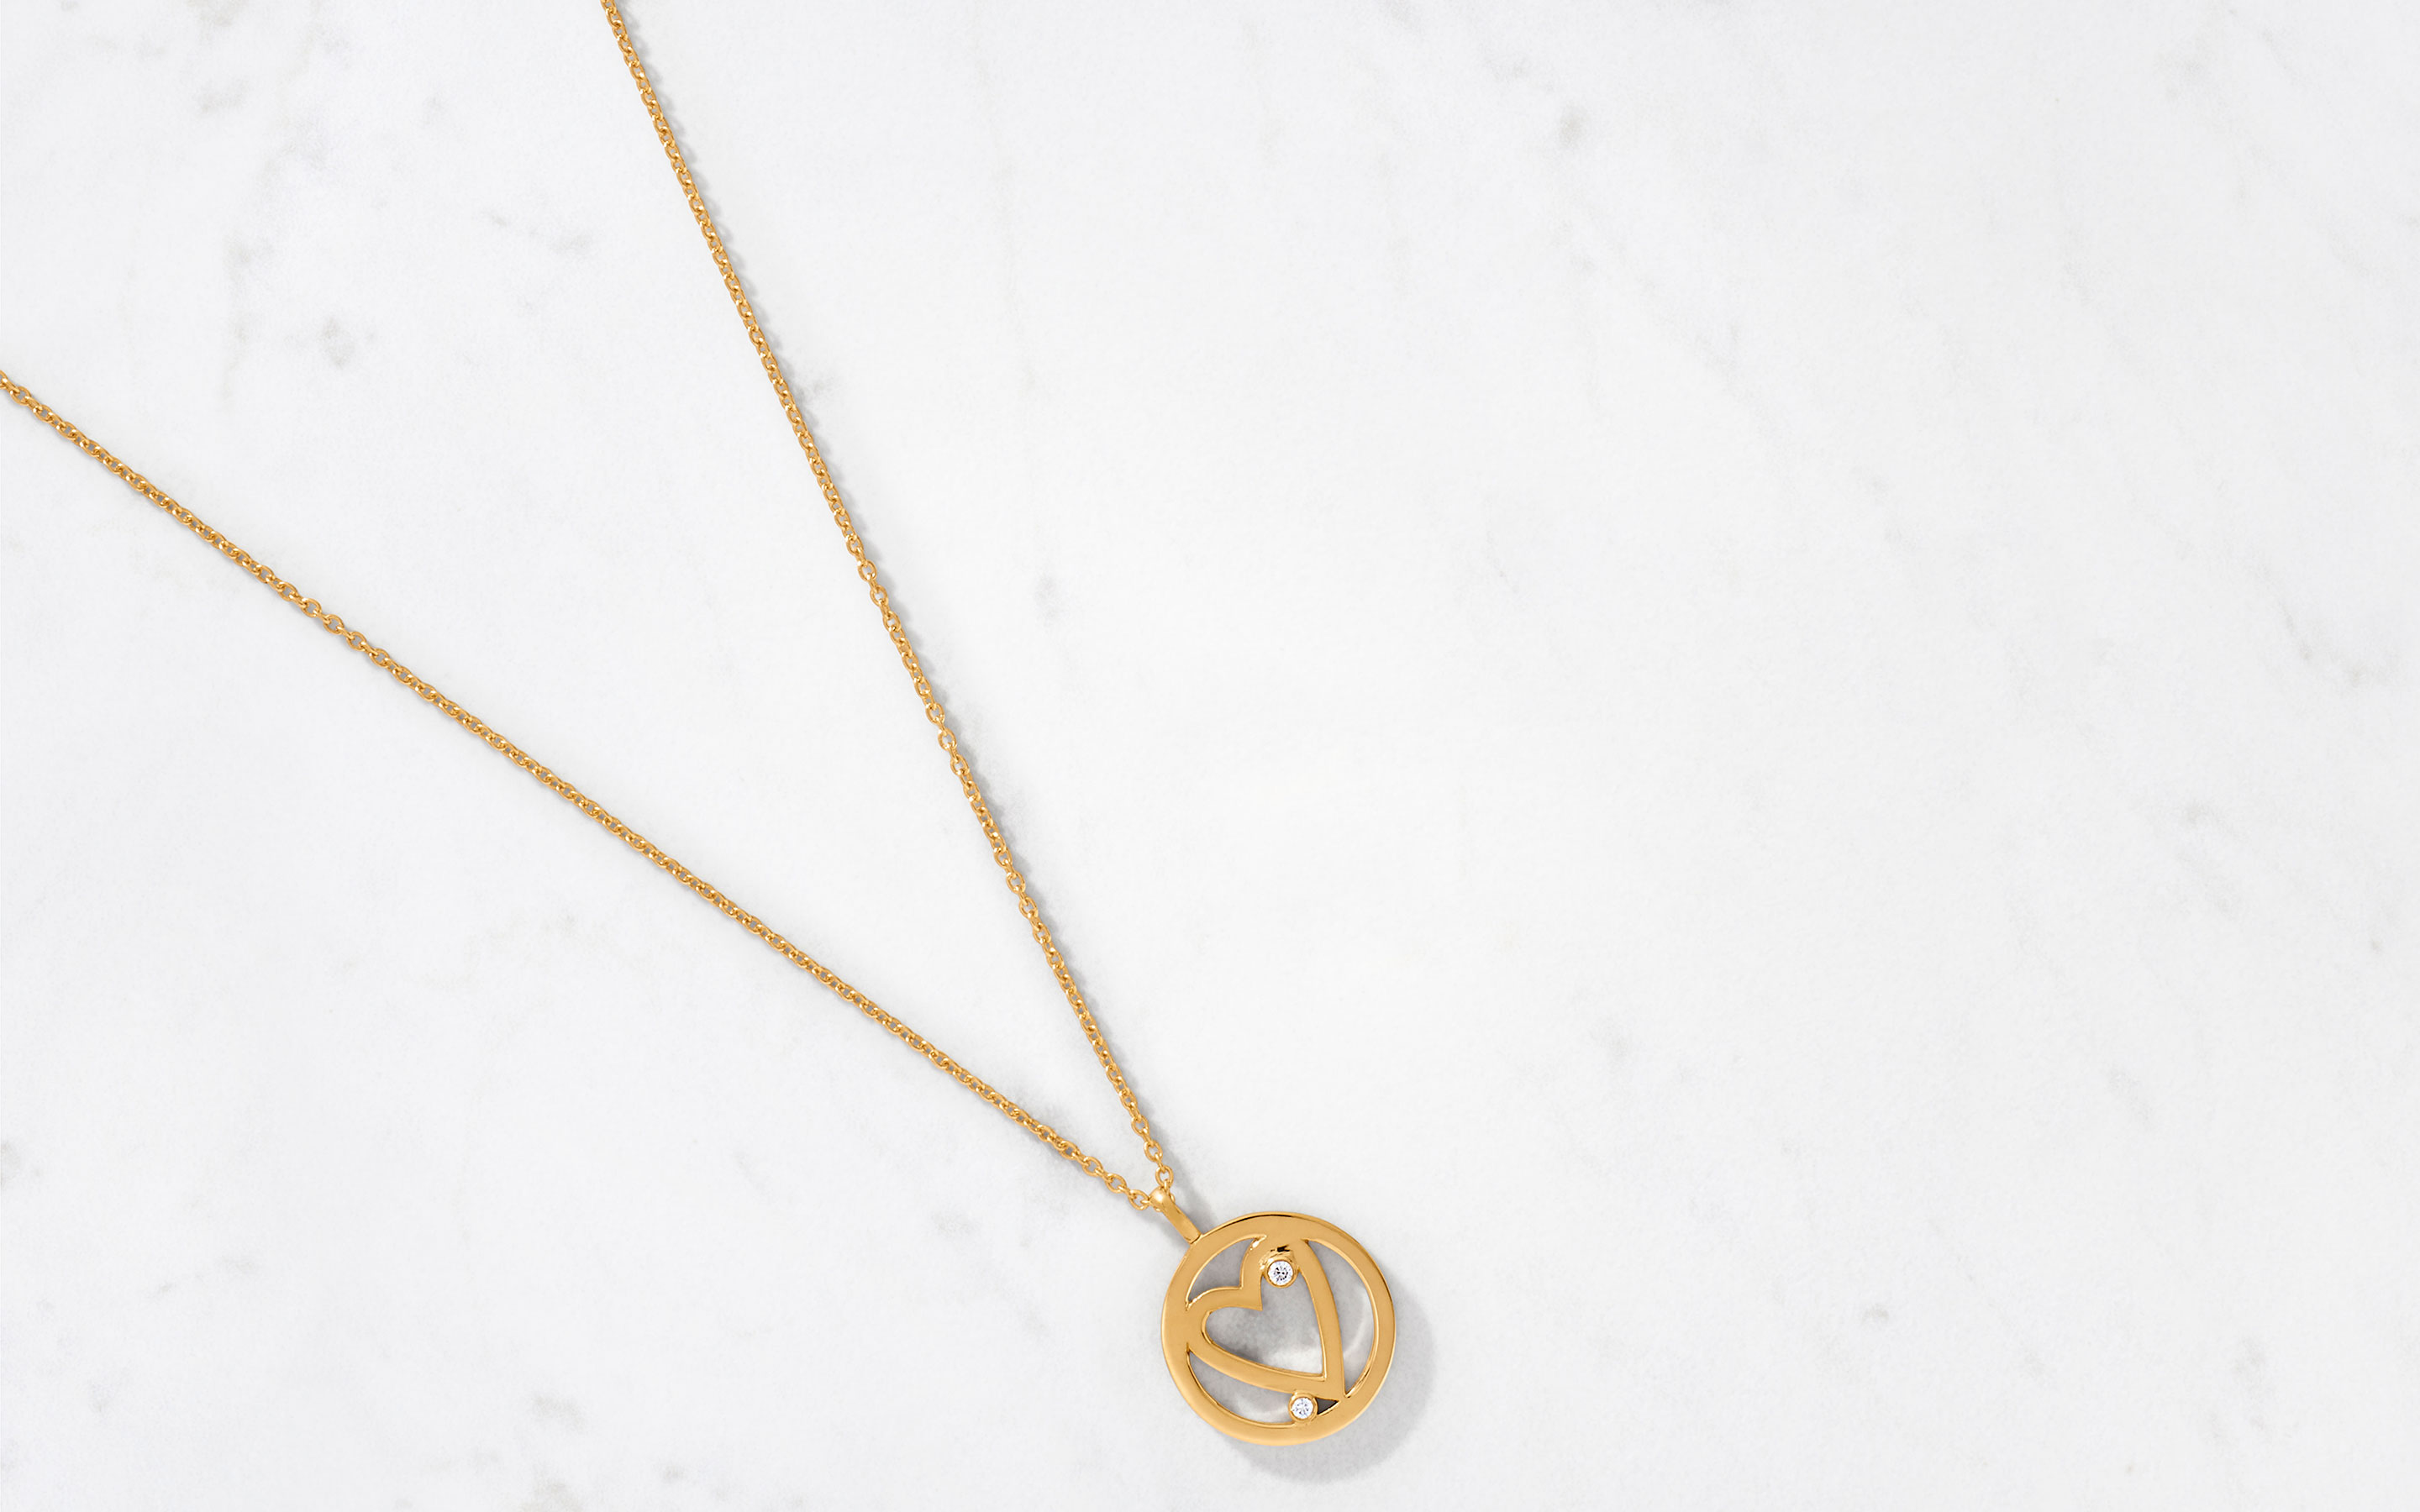 sleek necklace with open heart pendant made of 22 karat polished gold